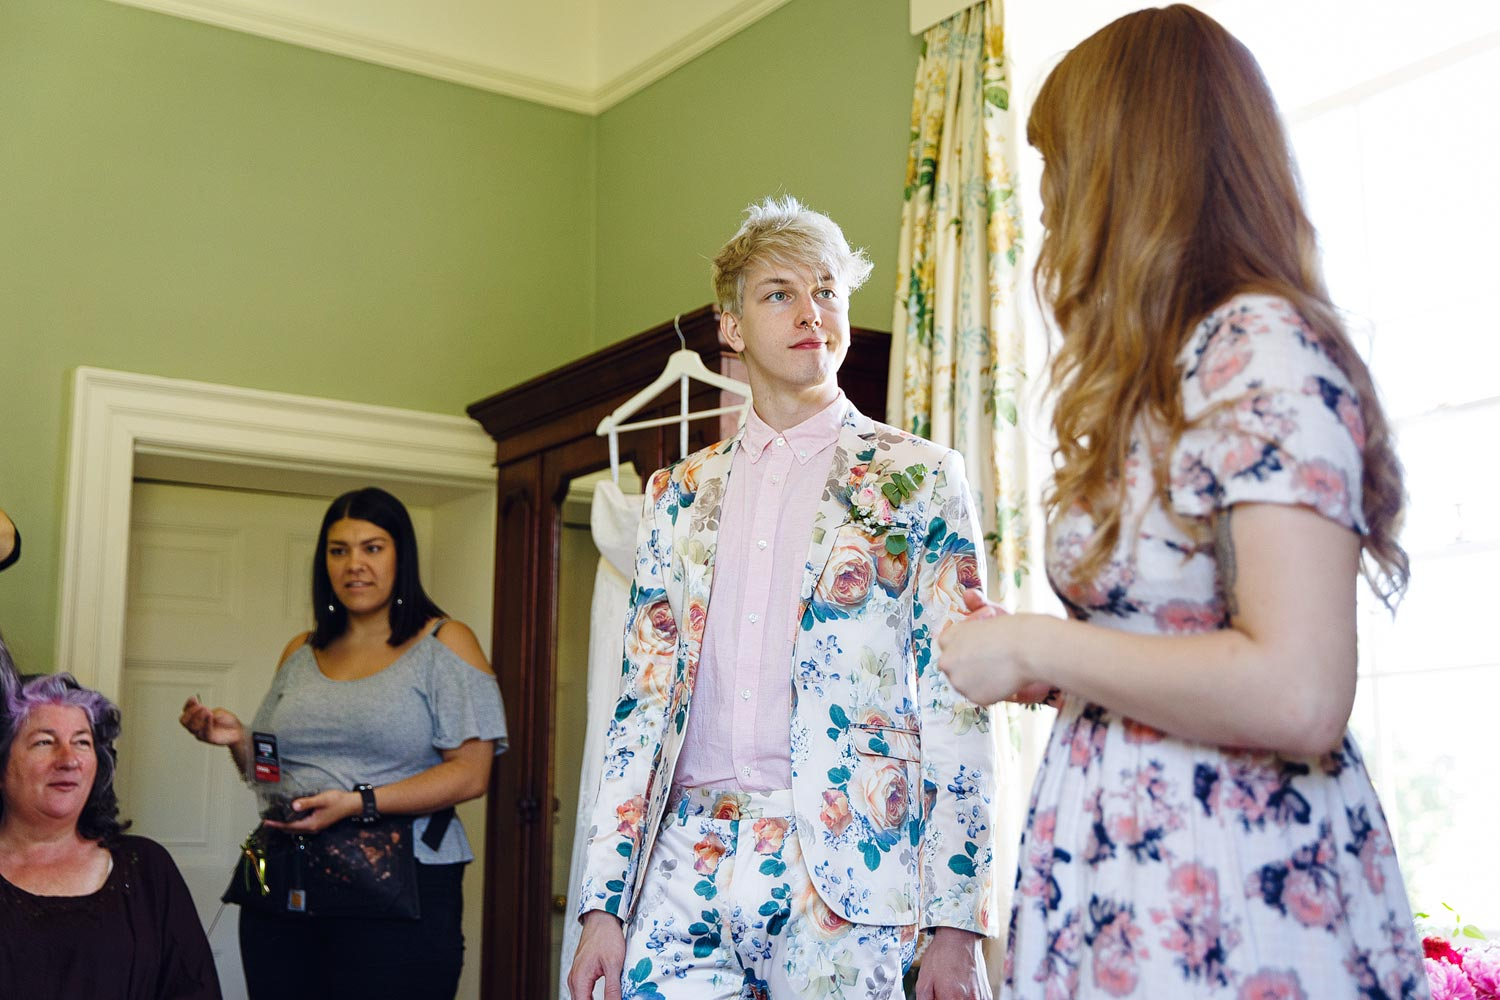 The bridesman wore a floral suit at a wedding at Bressingham Hall